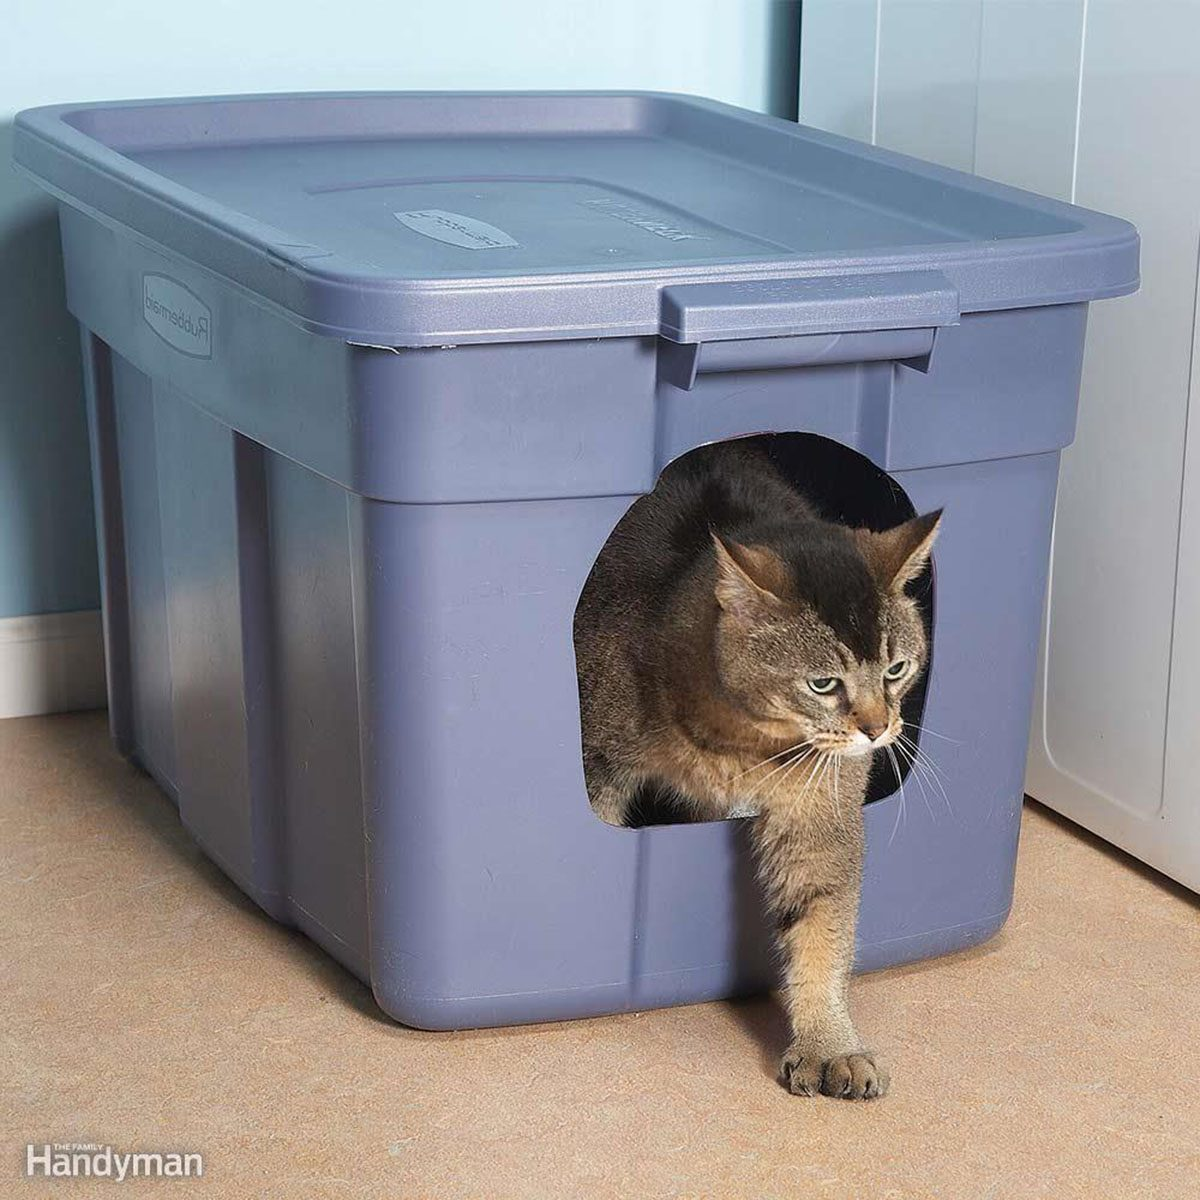 Kitty coming out of a tub turned into a litterbox